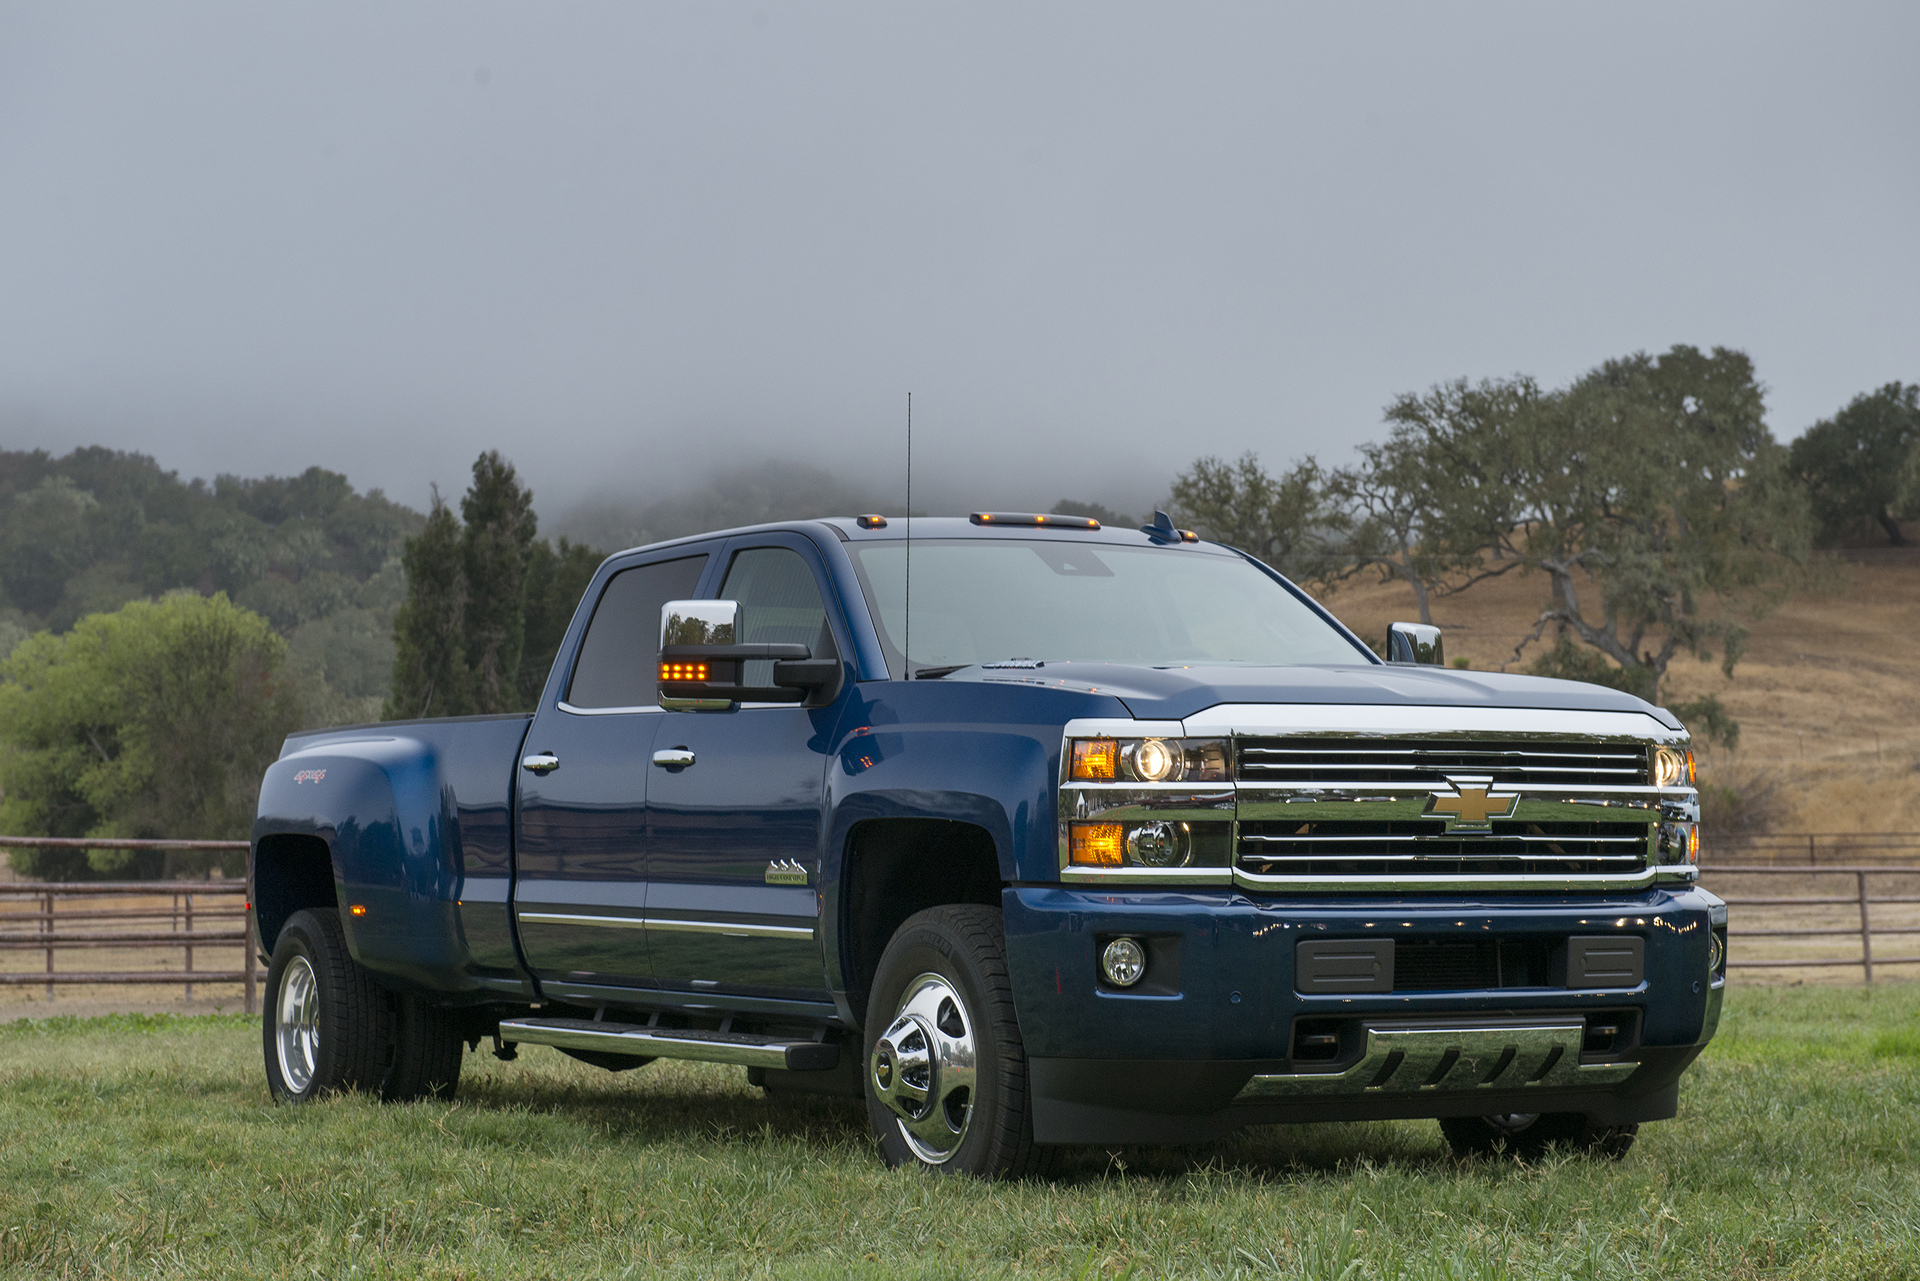 2016 Chevrolet Silverado 3500 HD All Terrain © General Motors